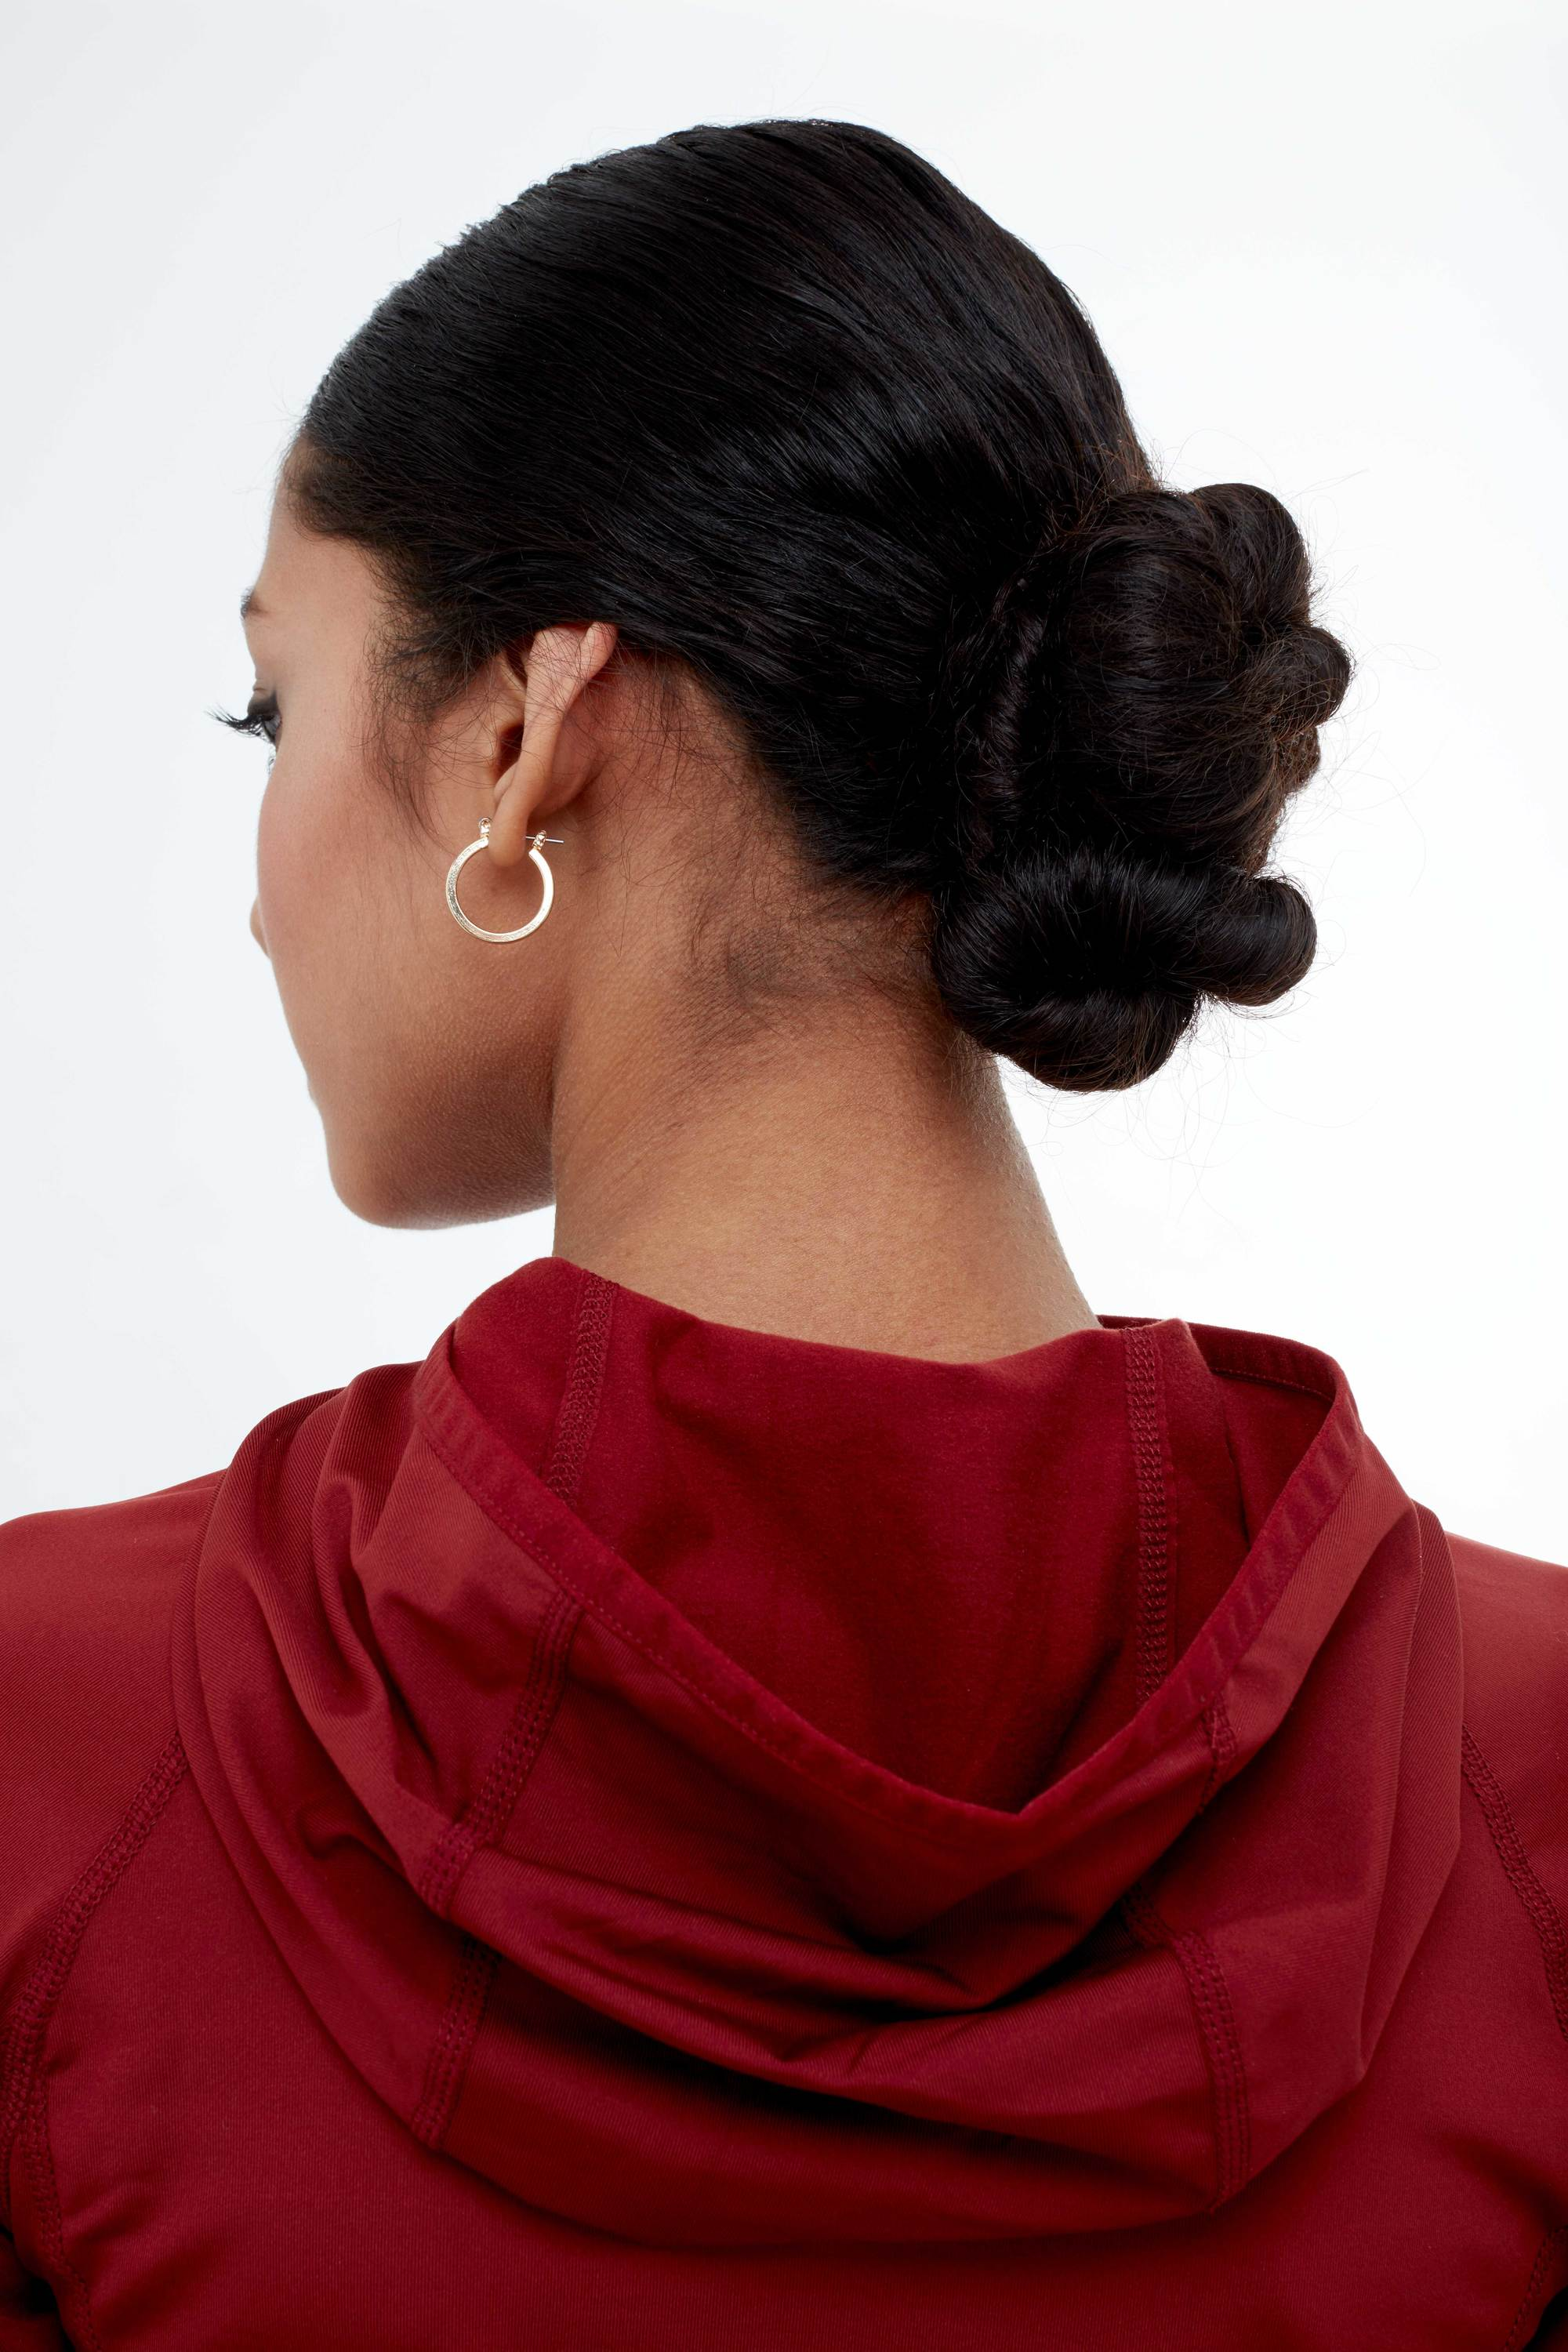 Backshot of a woman with dark brown hair styled into a low twisted bun, wearing a red workout outfit with a hoop earring in the All Things Hair studio